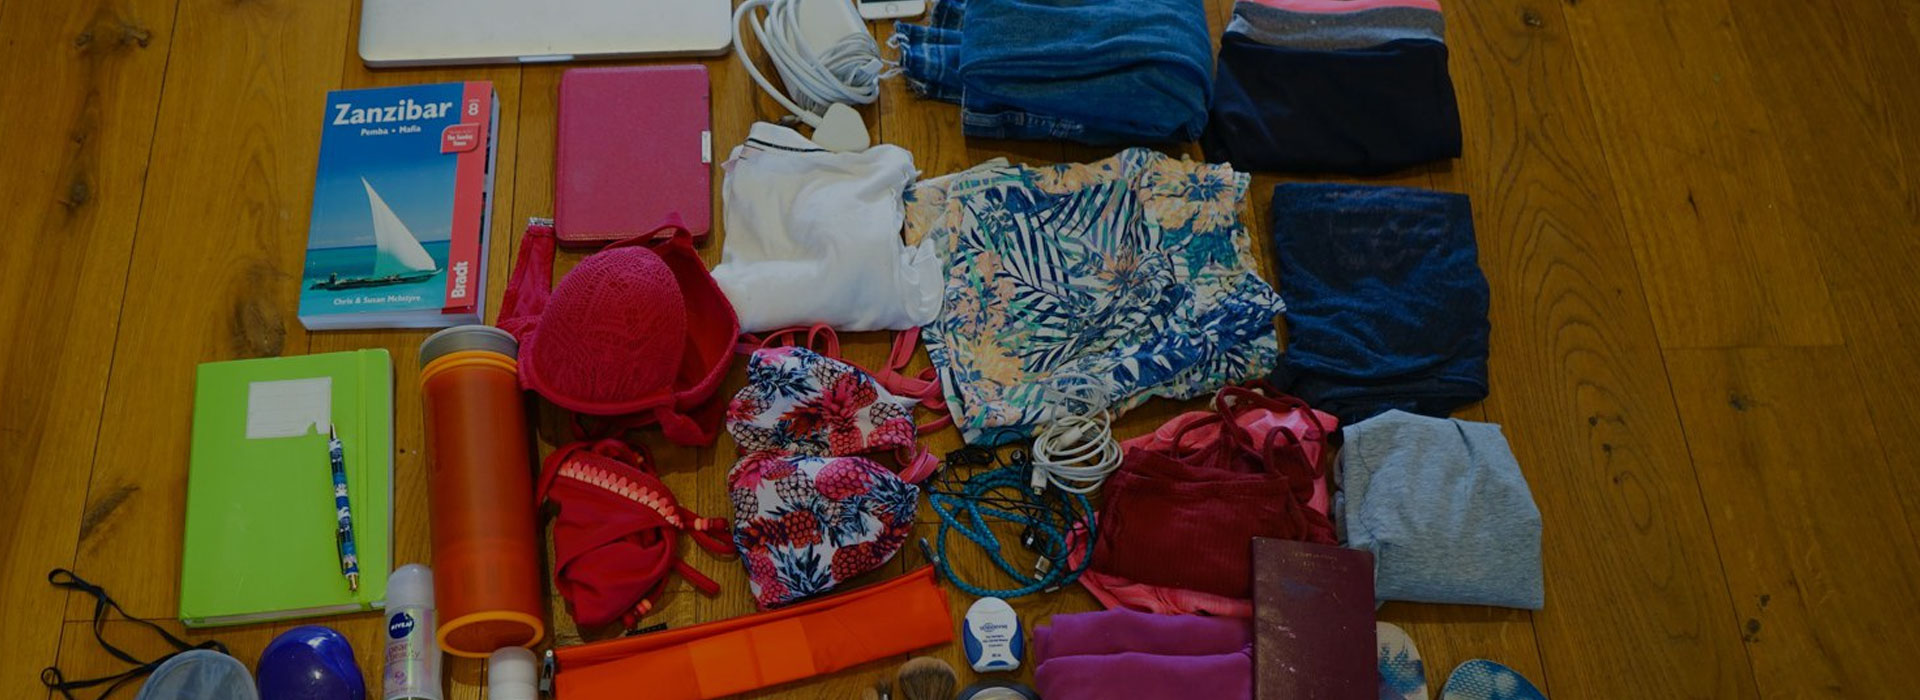 Zanzibar Packing List